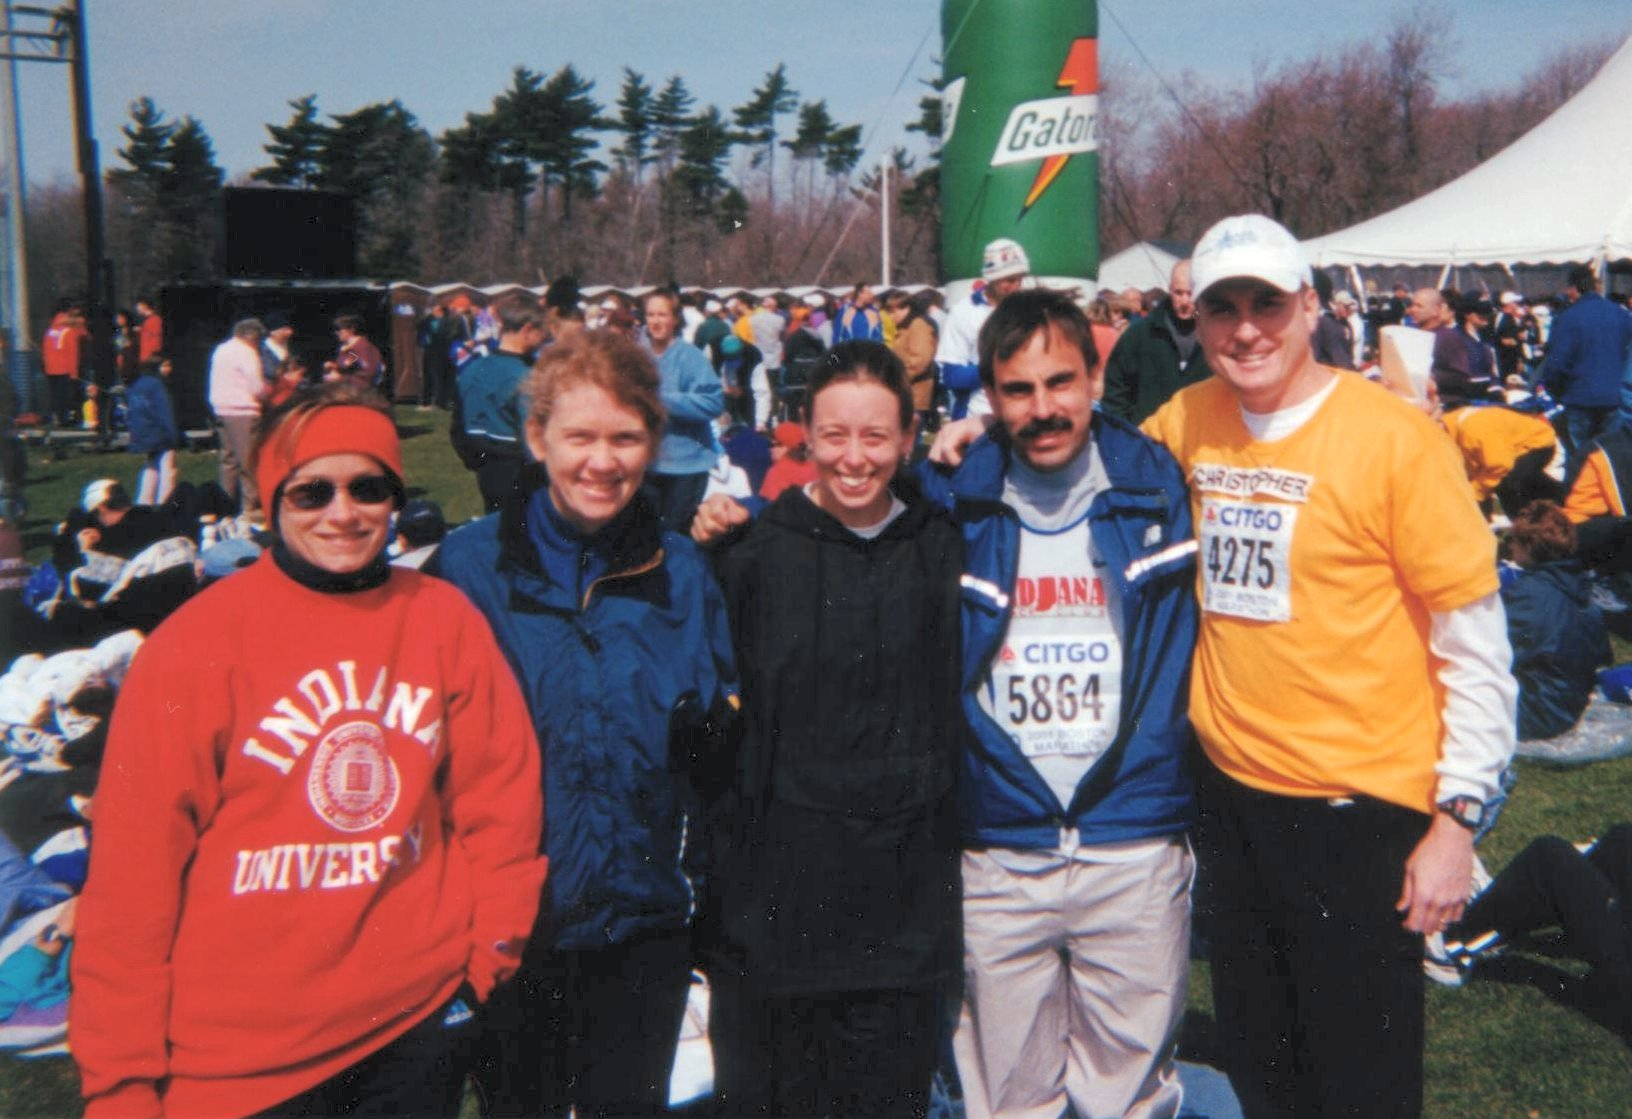 Runners Jill Boerigter, Linda Branstetter, Heather May, Bob Andree, and Christopher Goss (from left) huddle up at the athlete's  village in Hopkinton, MA on the morning of the 2001 Boston Marathon.